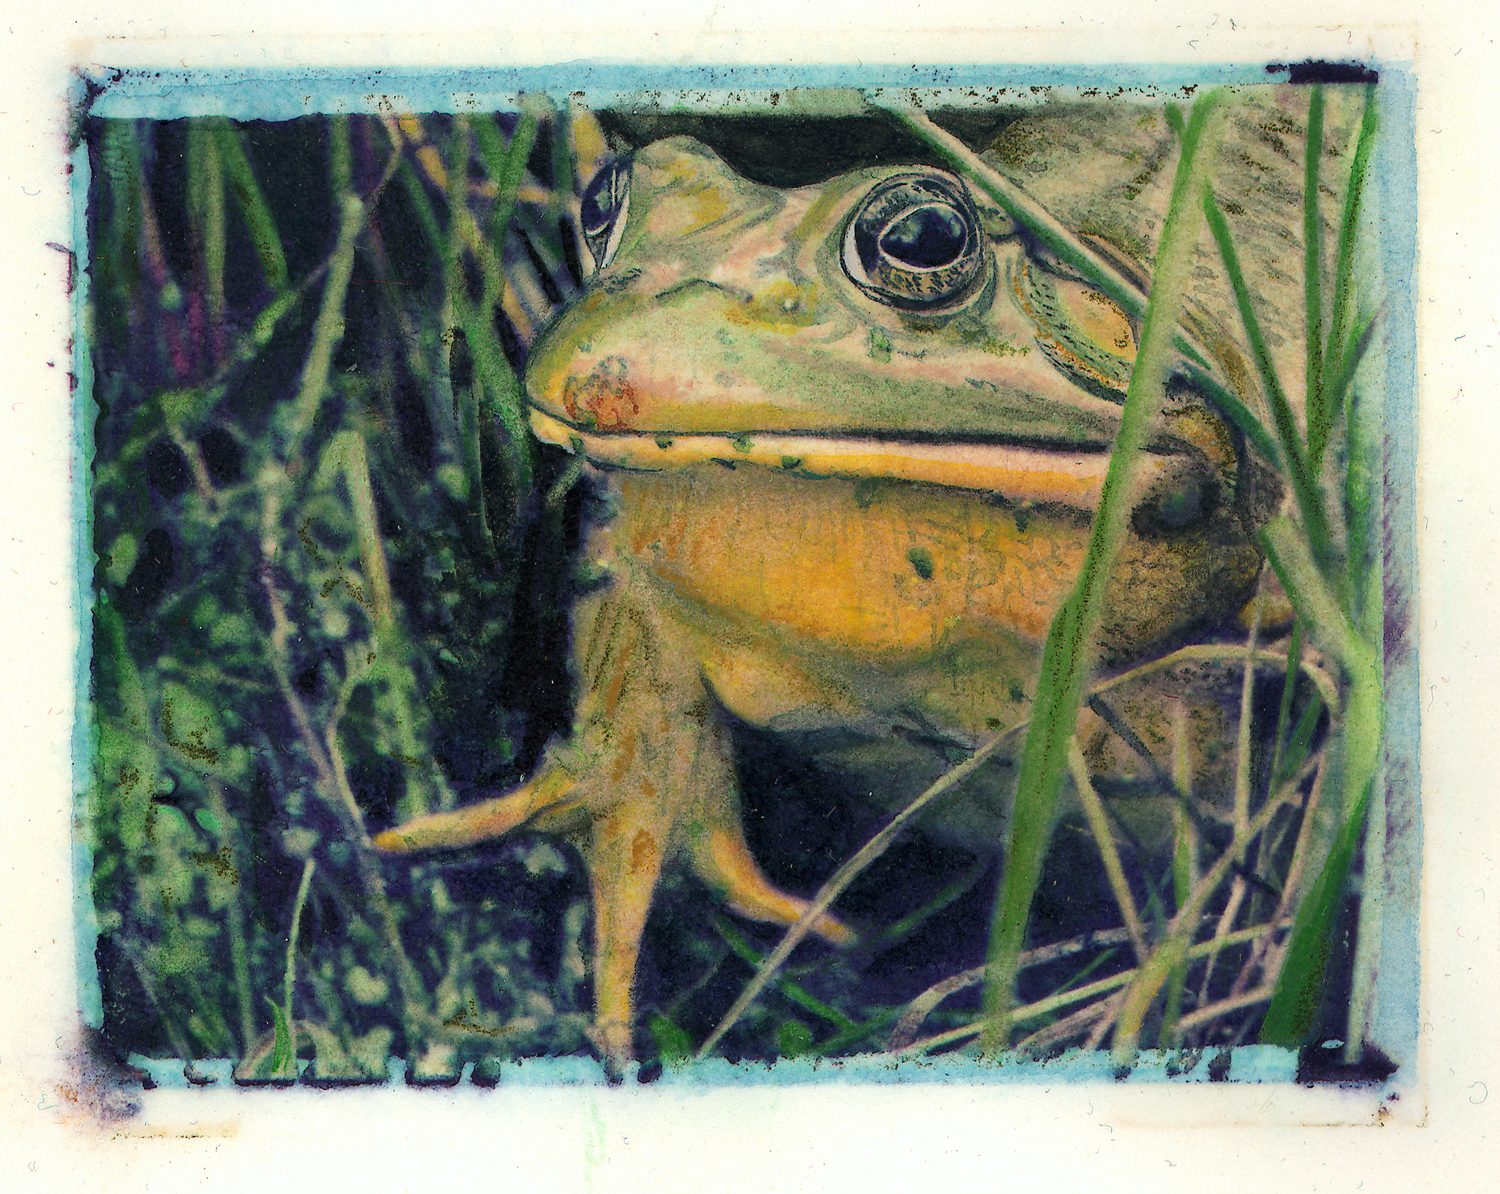 Bullfrog Looking Left